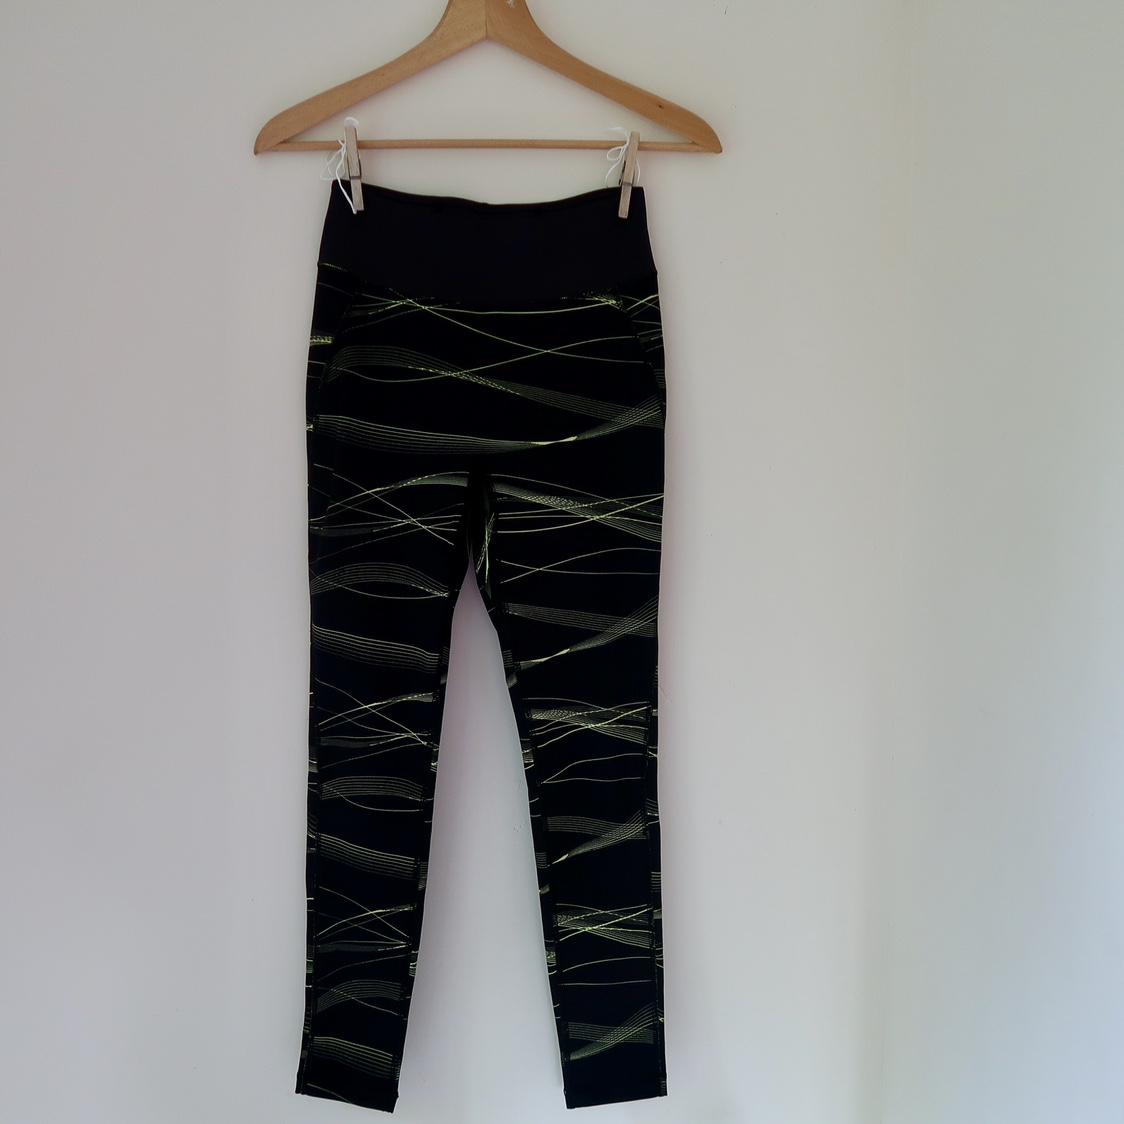 Uniqlo Airism Workout Leggings Black With Yellow Depop